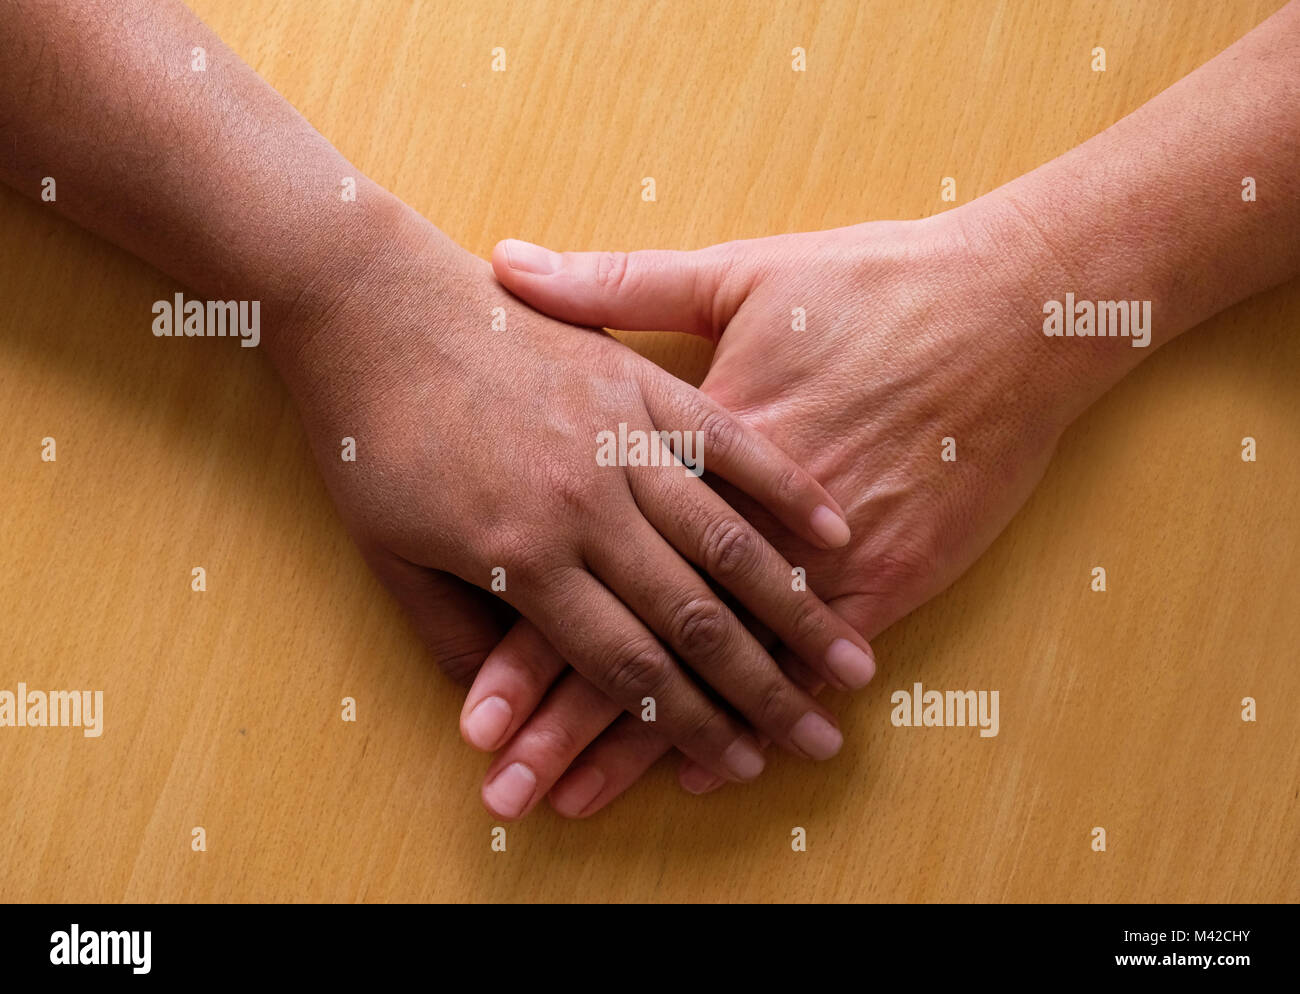 overhead view of two fifty year old female hands and lower arms placed ontop of each other, the top hand is Asian Stock Photo